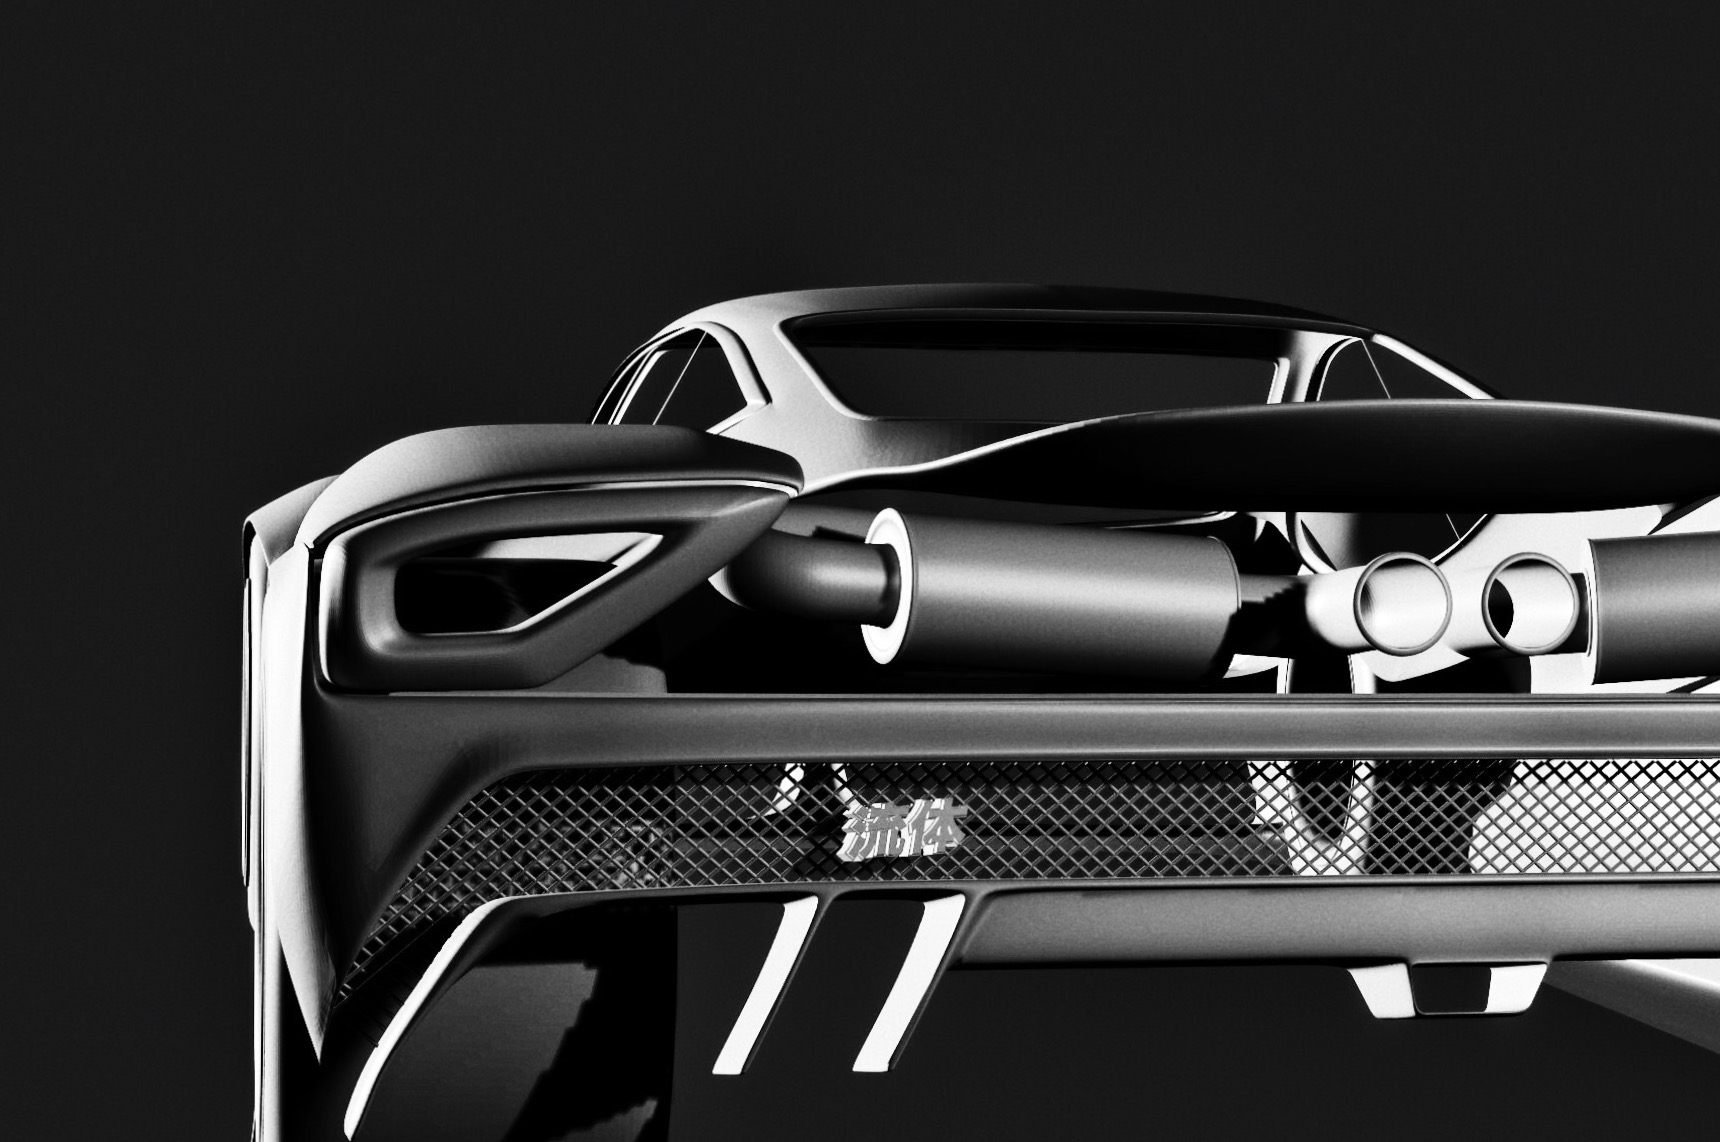 Obsessing over the exhaust solution here, trying to incorporate mechanical exposure wherever possible.